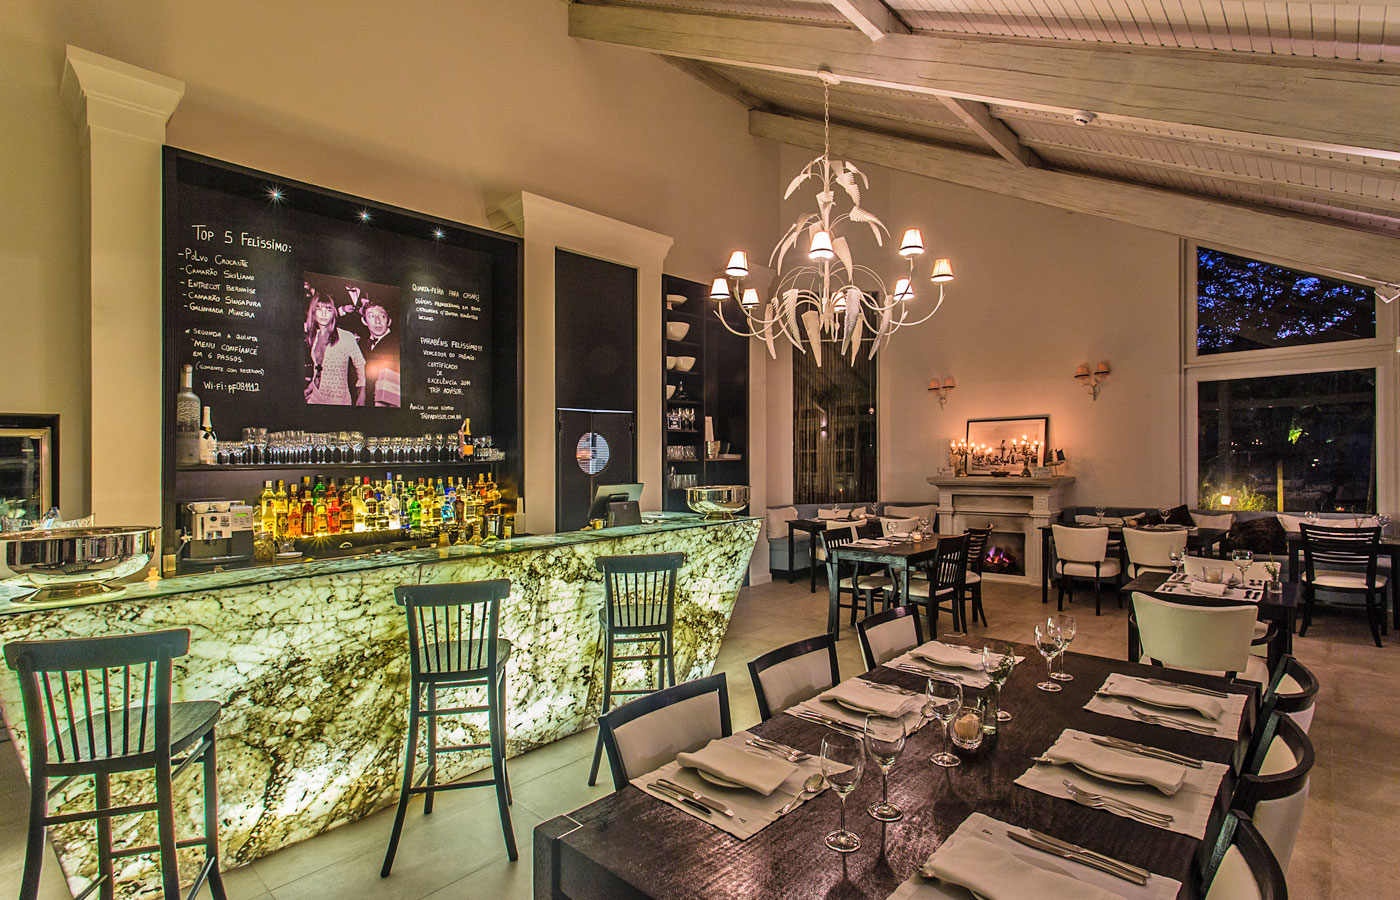 The intimate luxury Bistro Felissimo restaurant at the Felissimo Exclusive Hotel in Balneario de Camboriu, Brazil